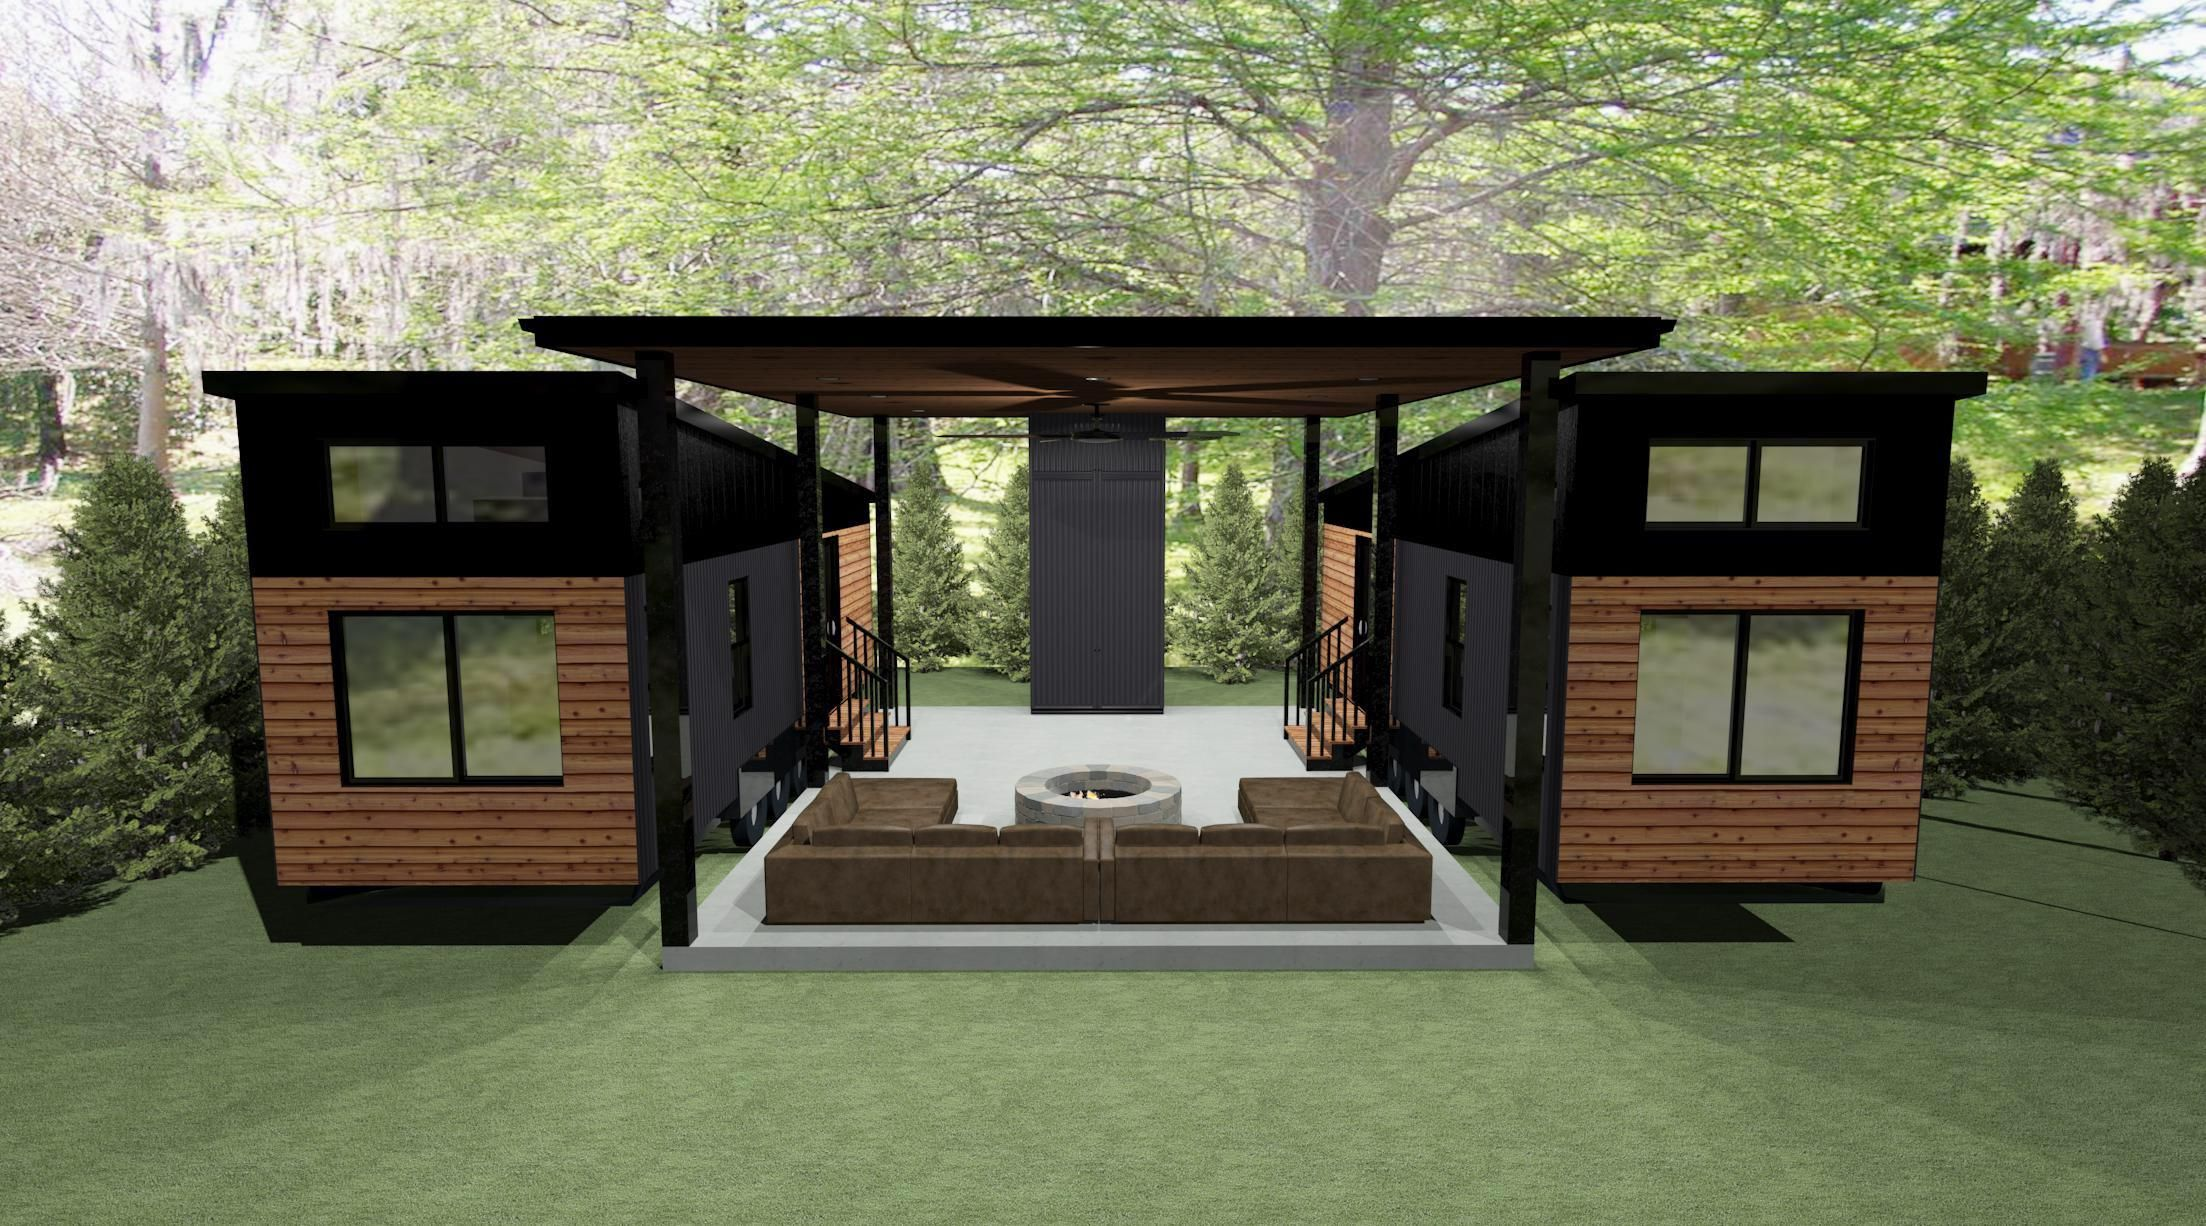 Double THOW with open air pavilion between. (Rende